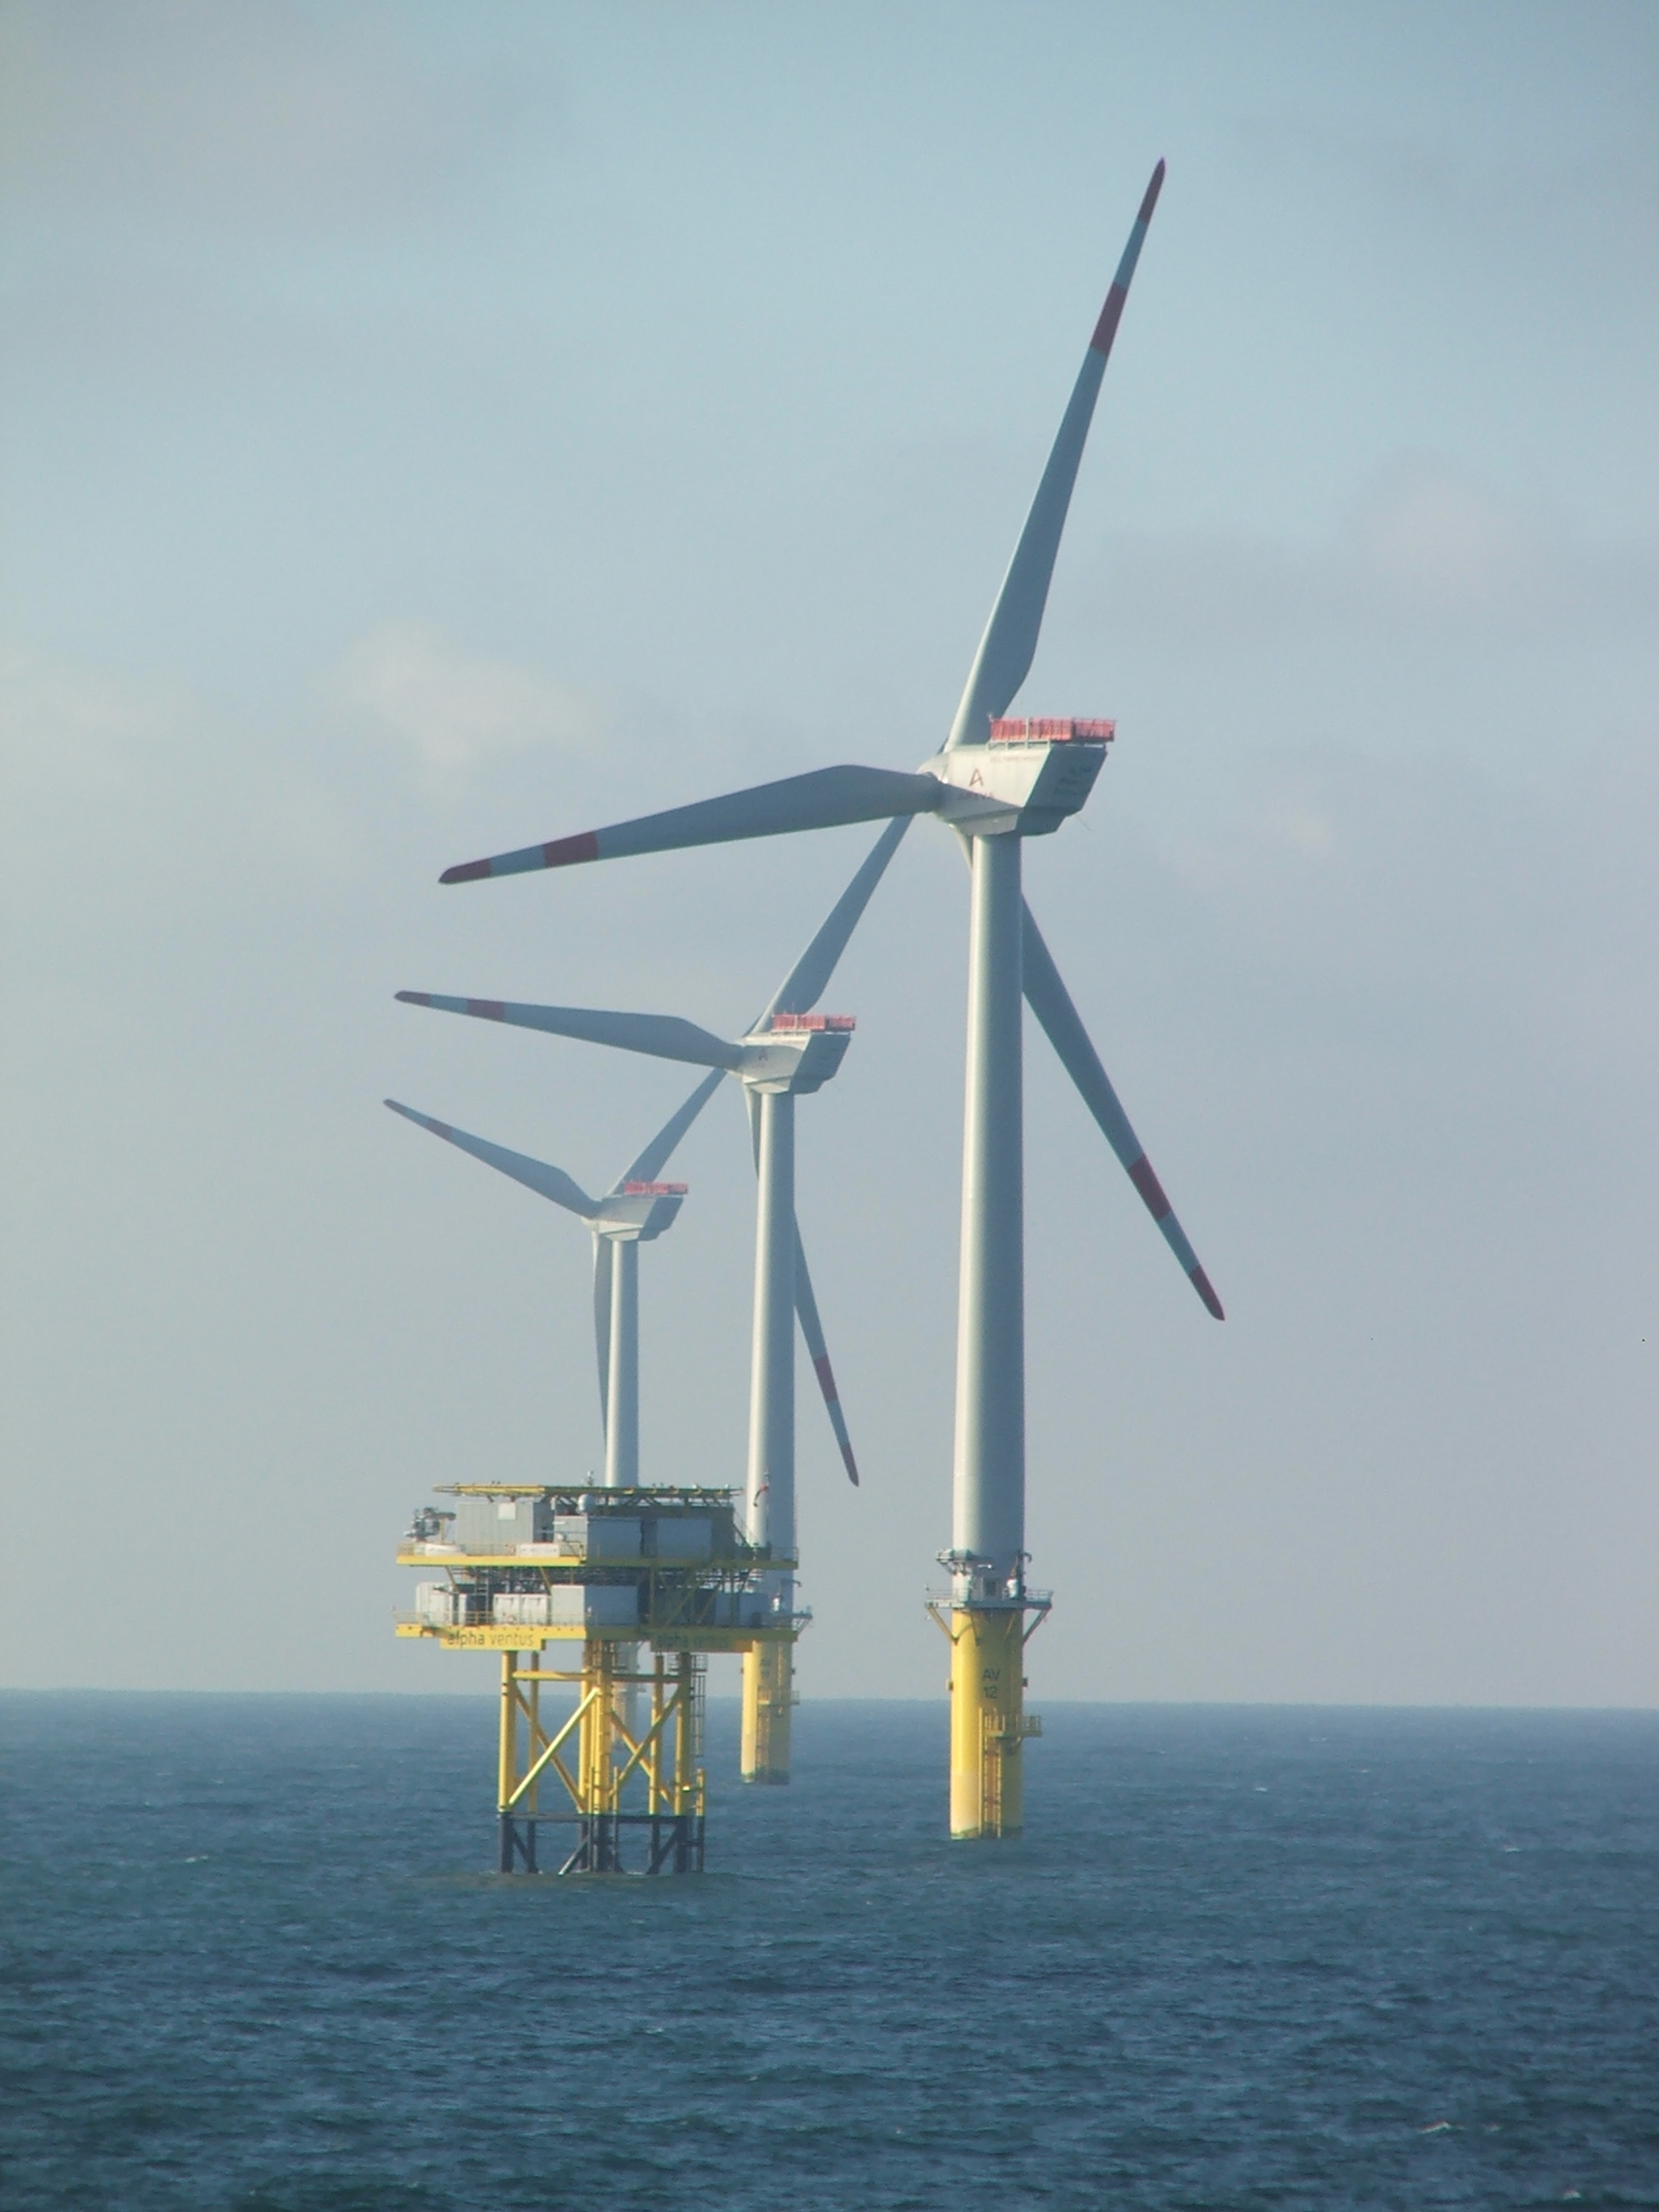 Offshore wind power - Wikipedia